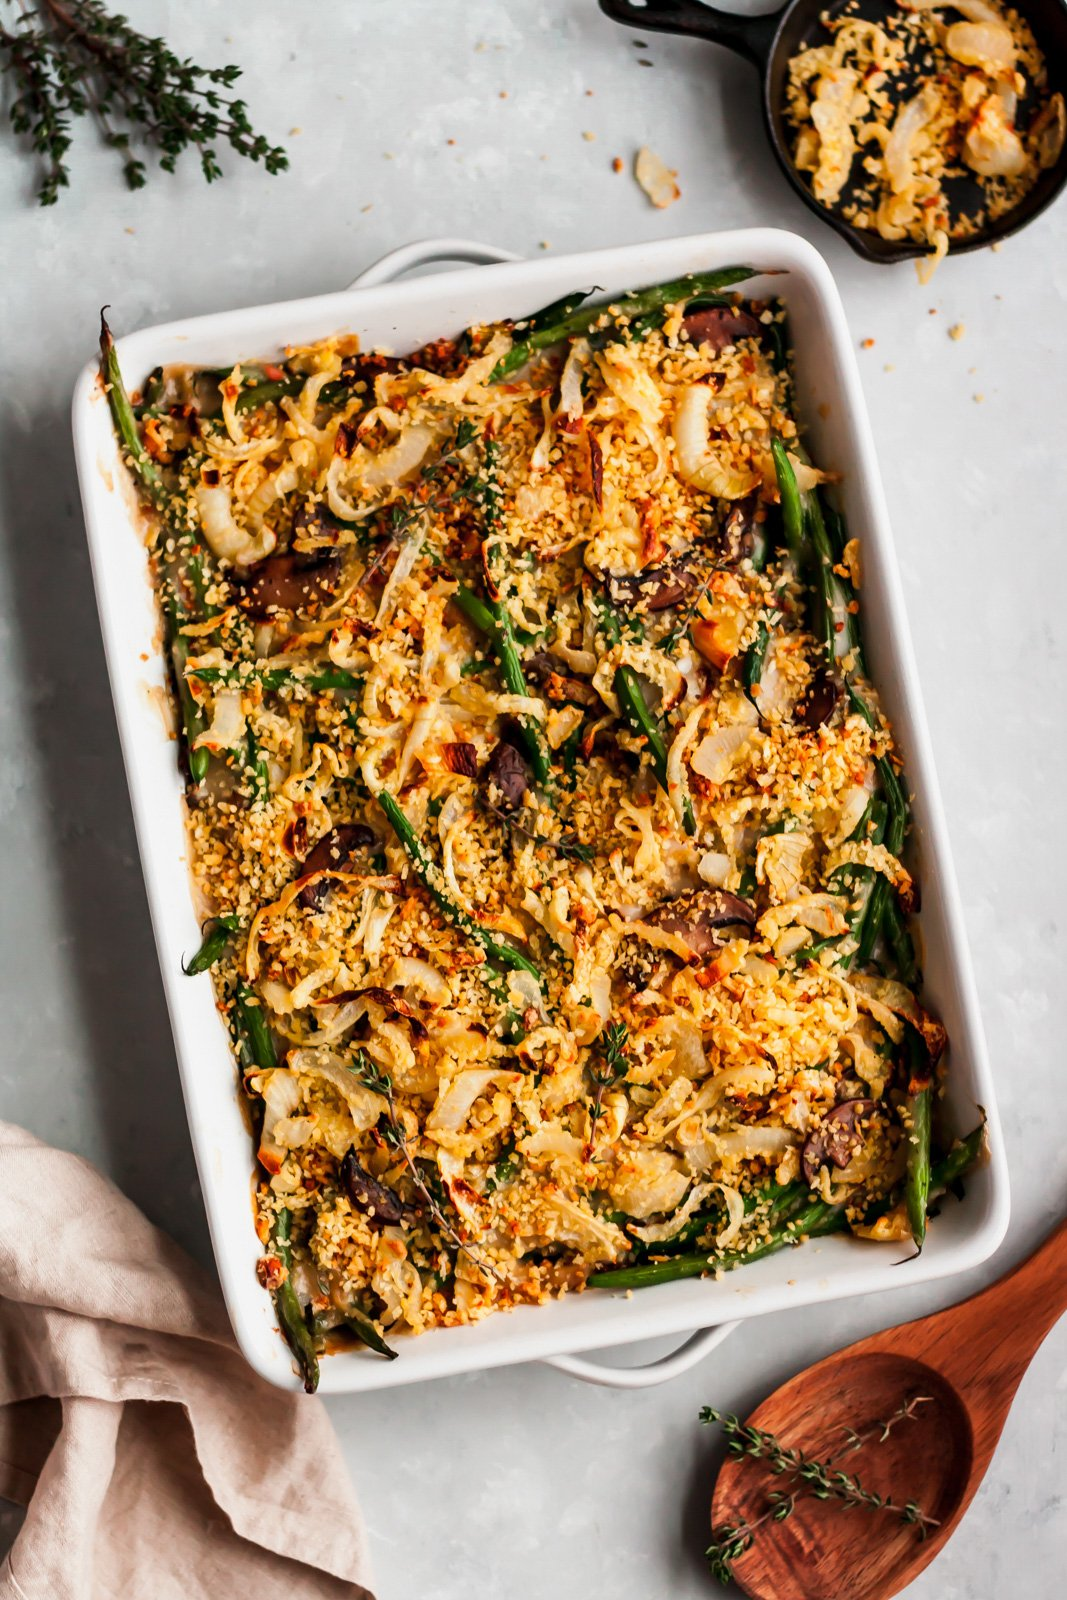 homemade healthy green bean casserole in a baking dish